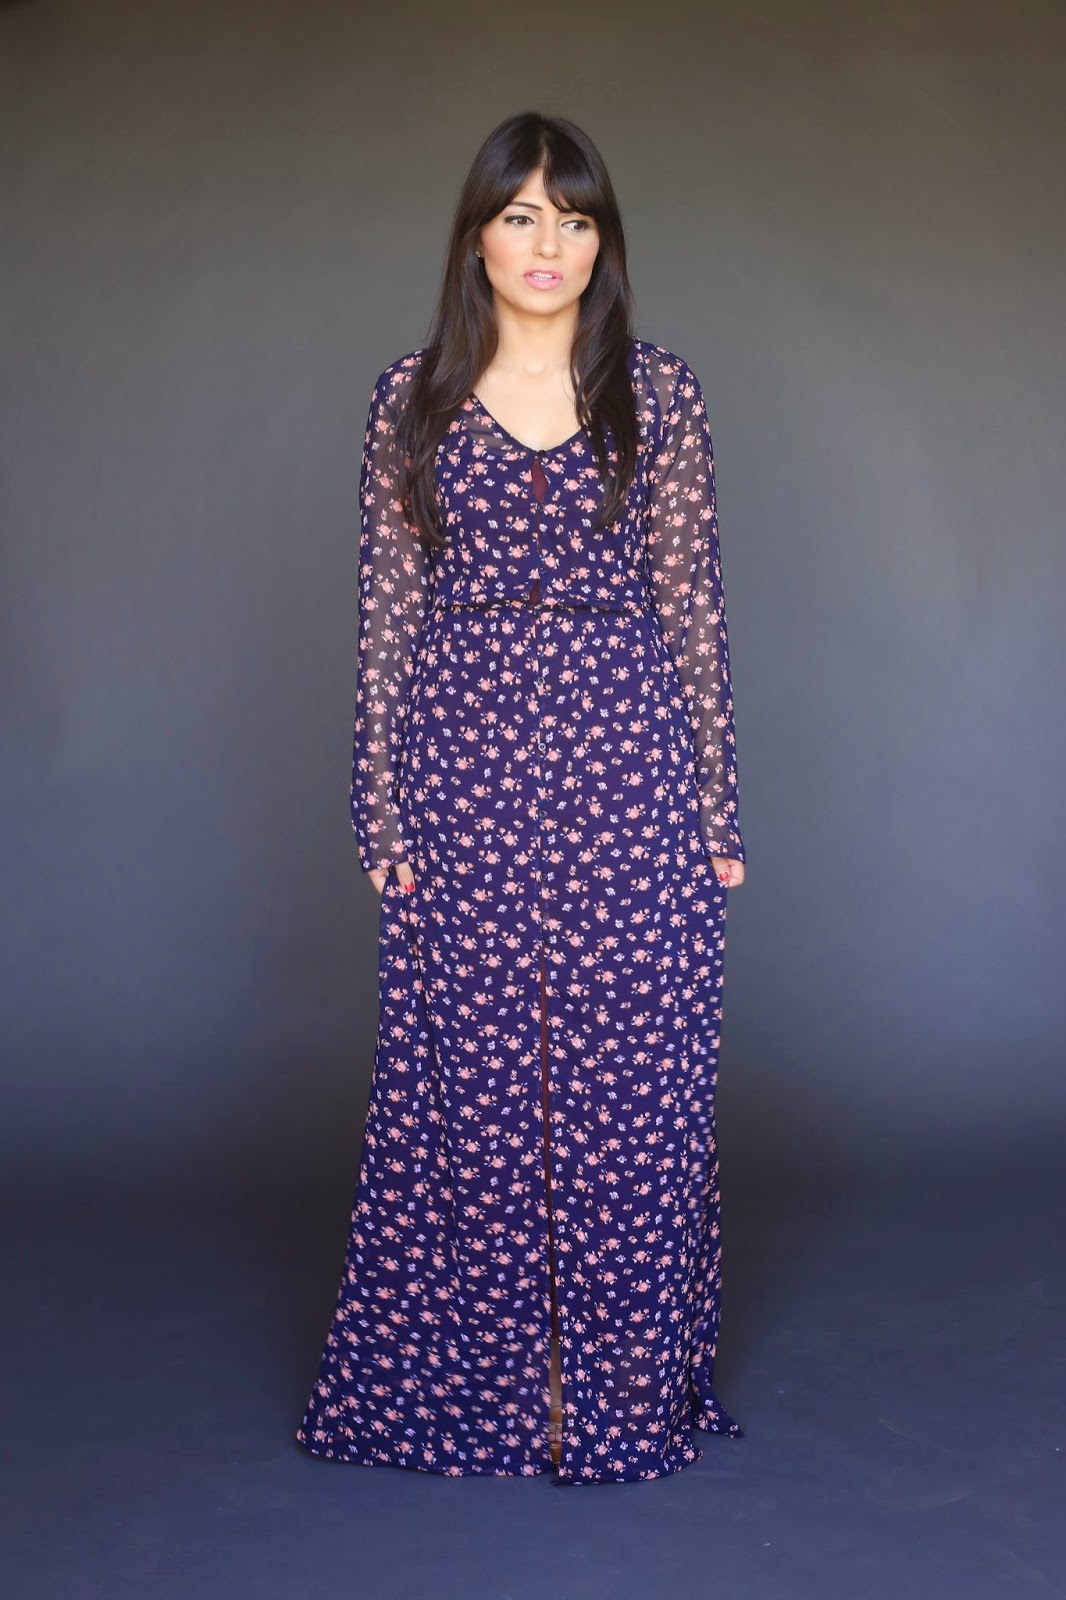 sheer long sleeve maxi dress with slip and small floral print Sophia Majeeb hijab tznius Mode-sty